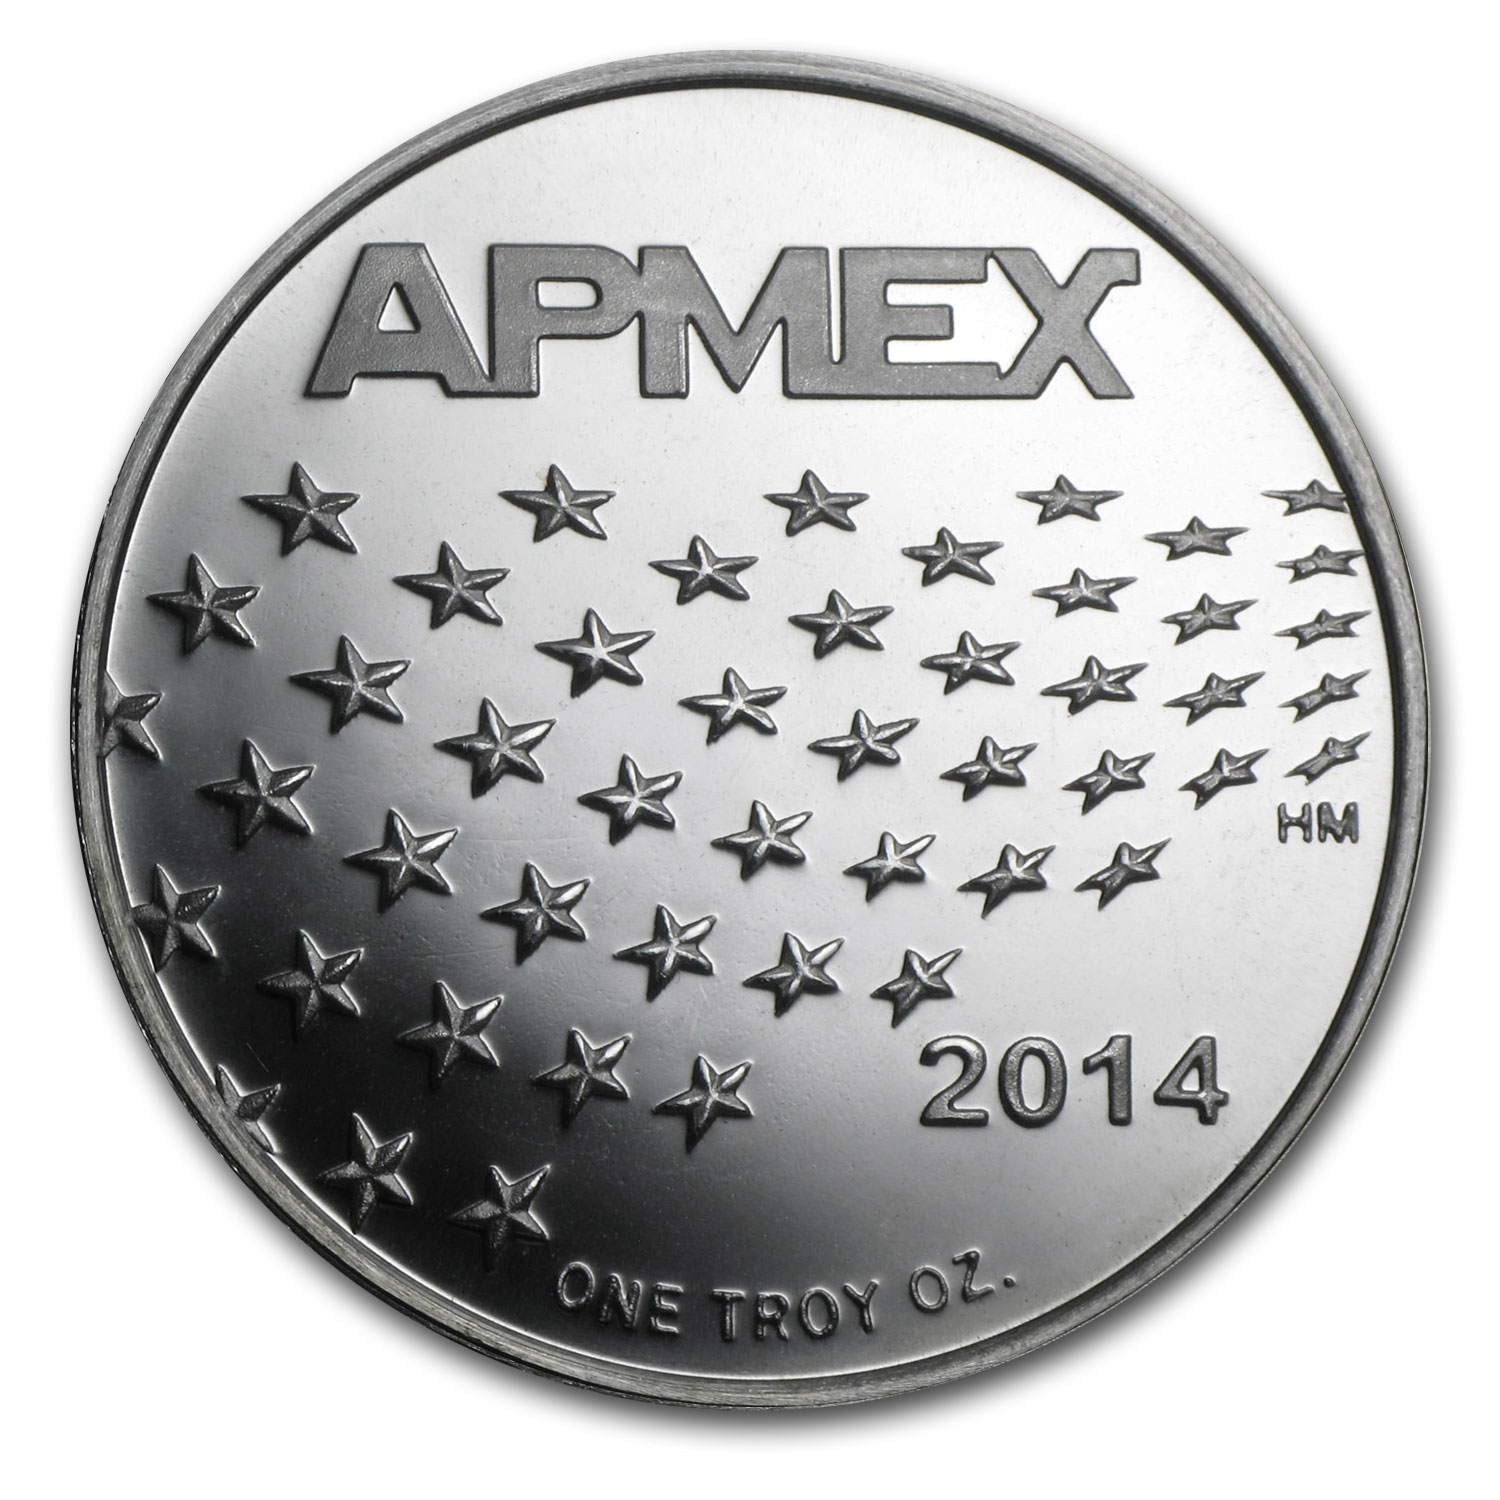 1 oz Silver Round - APMEX (2014 Stars and Stripes)